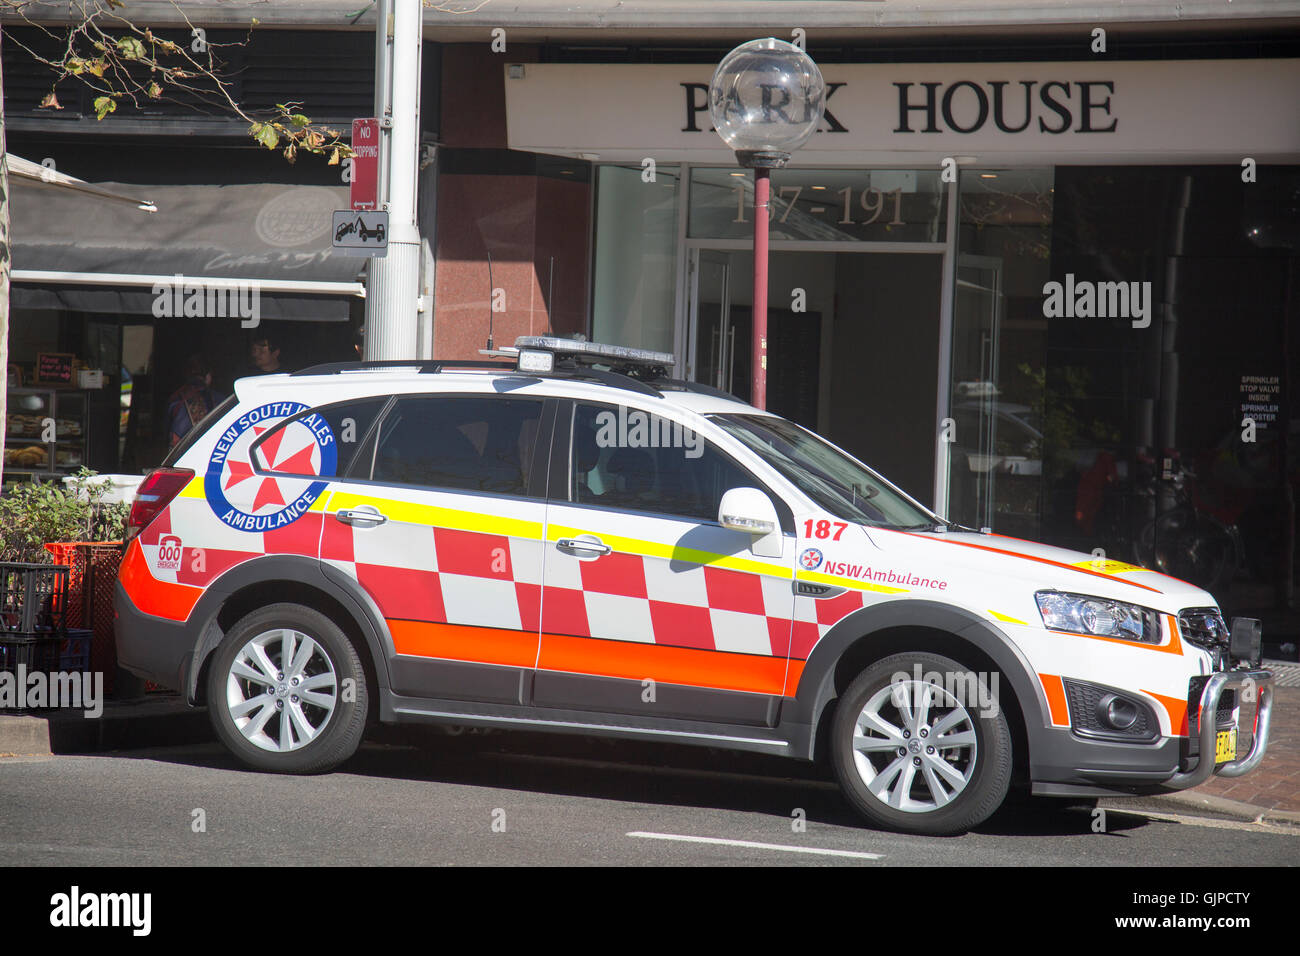 New South Wales paramedic ambulance vehicle parked in macquarie street,Sydney,Australia - Stock Image